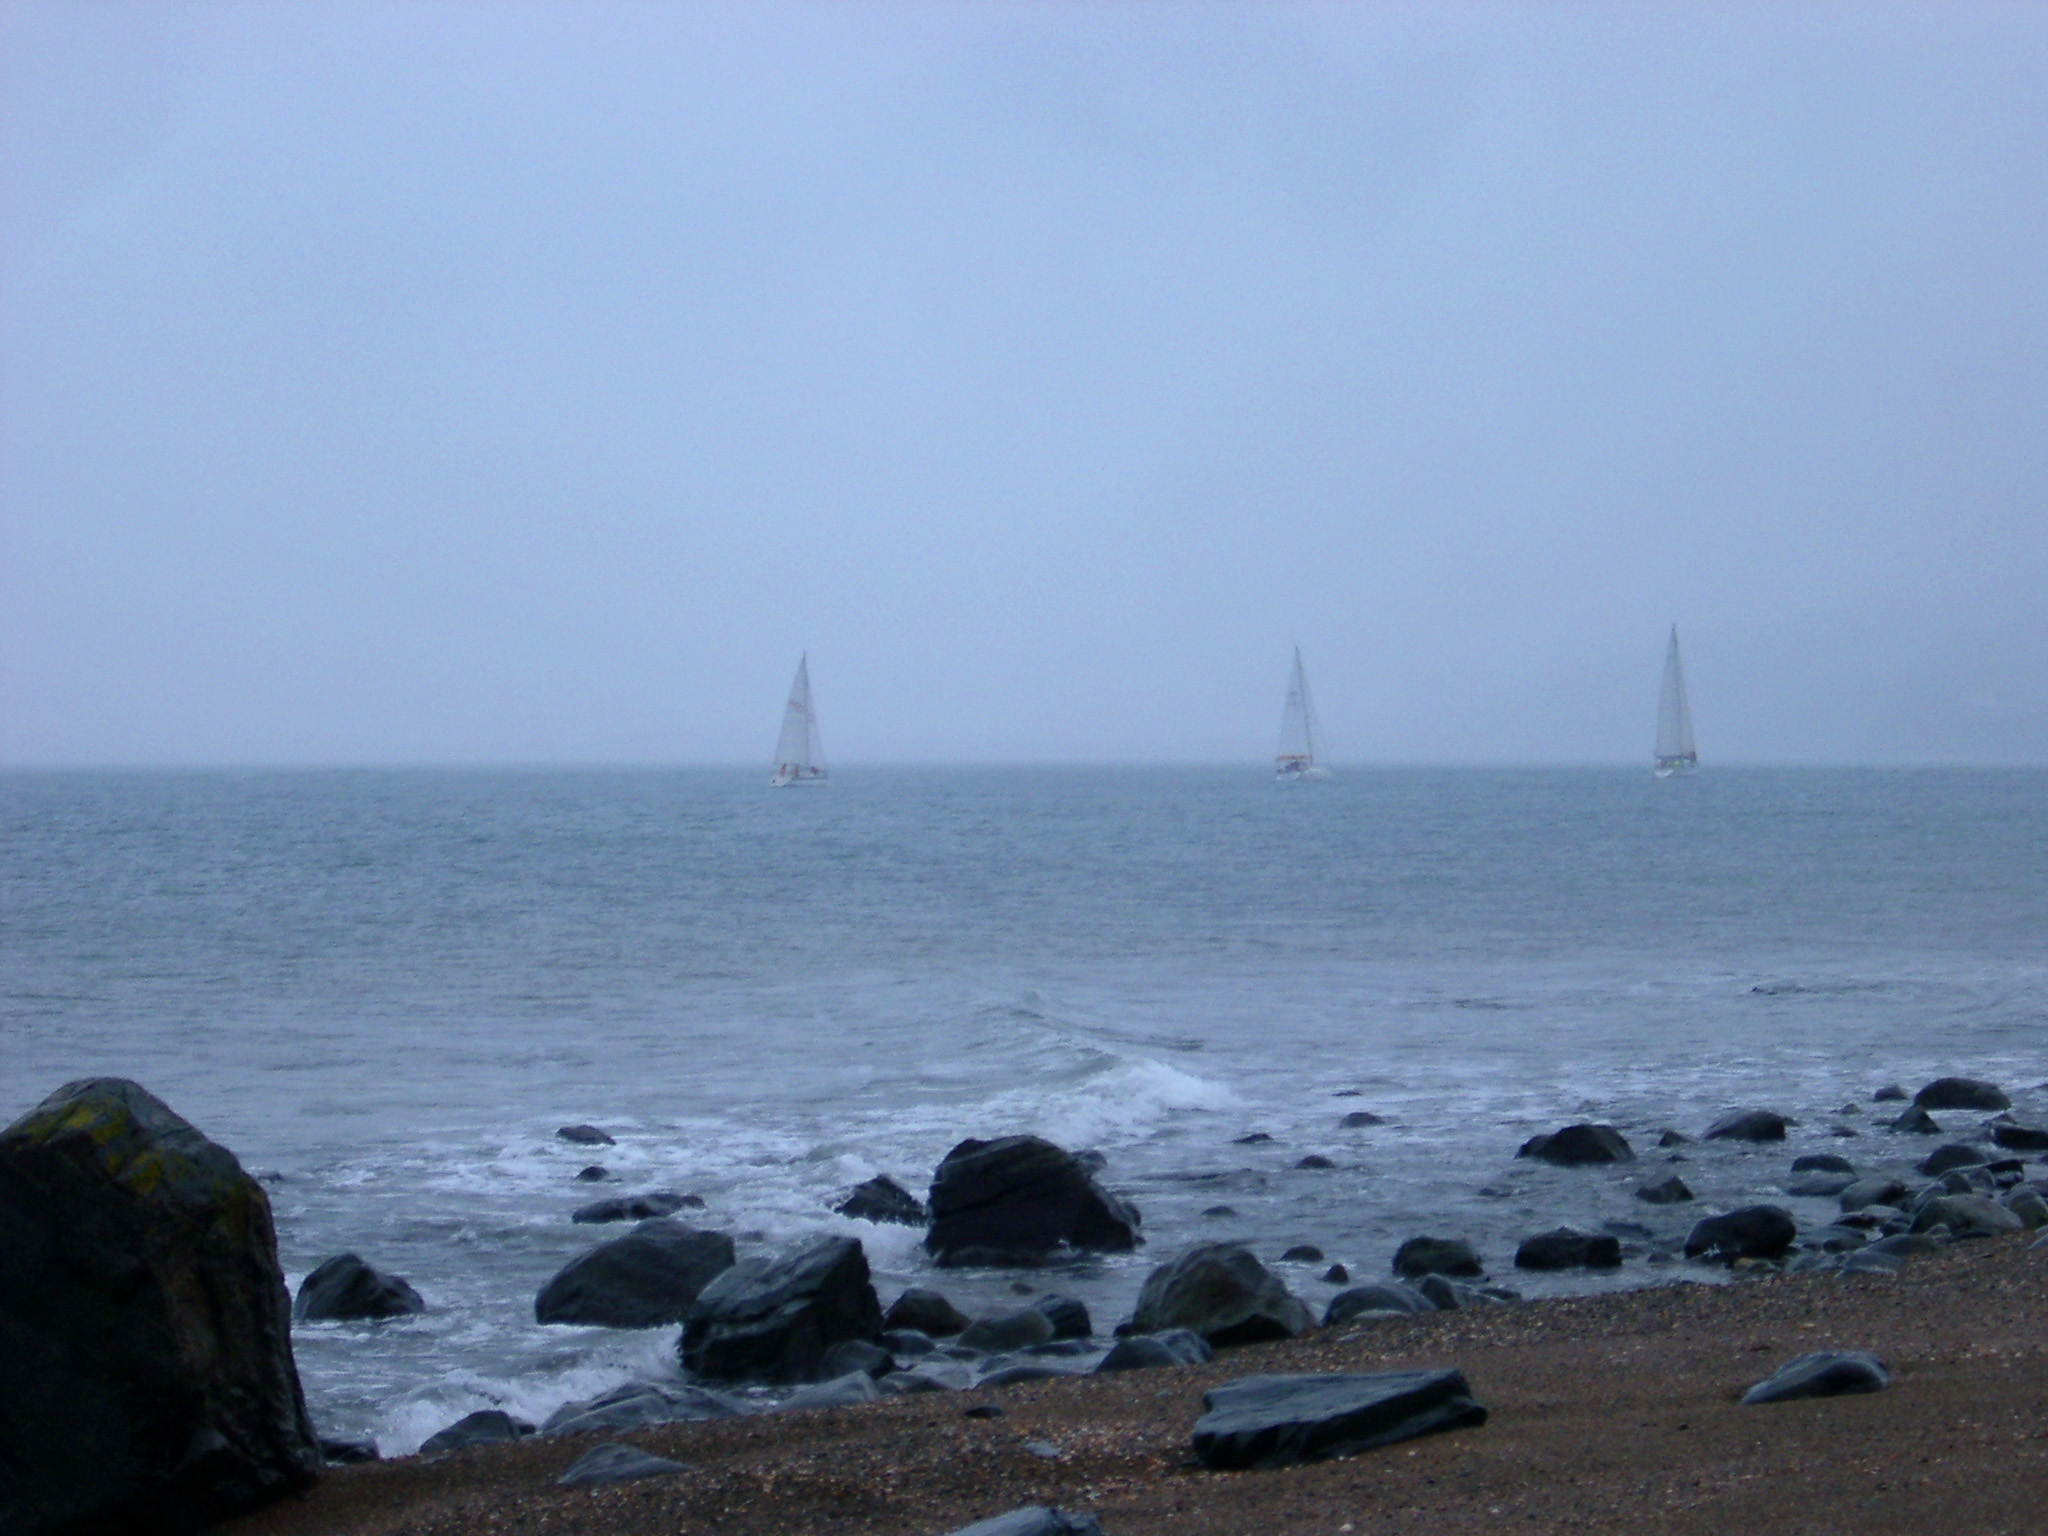 View from a rocky beach of three yachts sailing offshore on the horizon on a cold bleak misty day